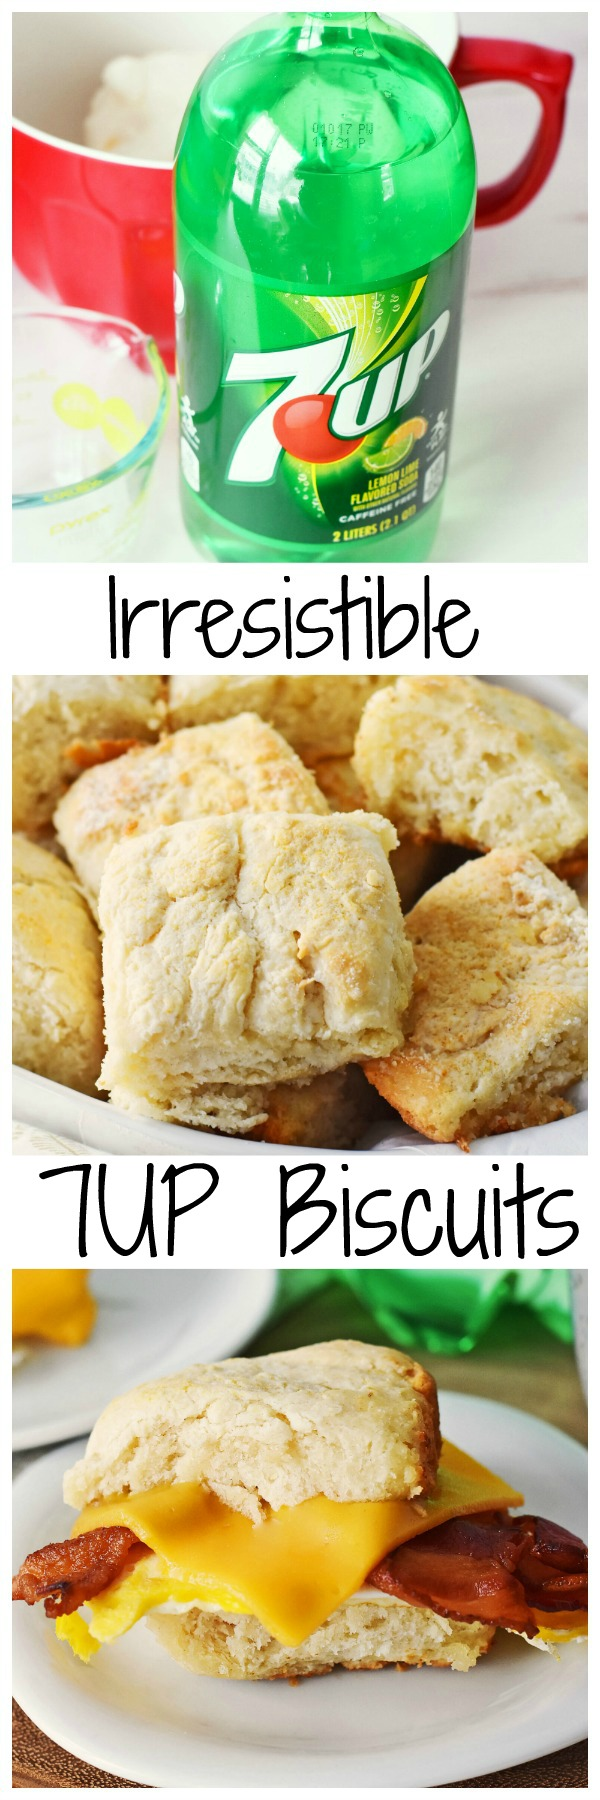 Irresistible 7UP biscuits Pin